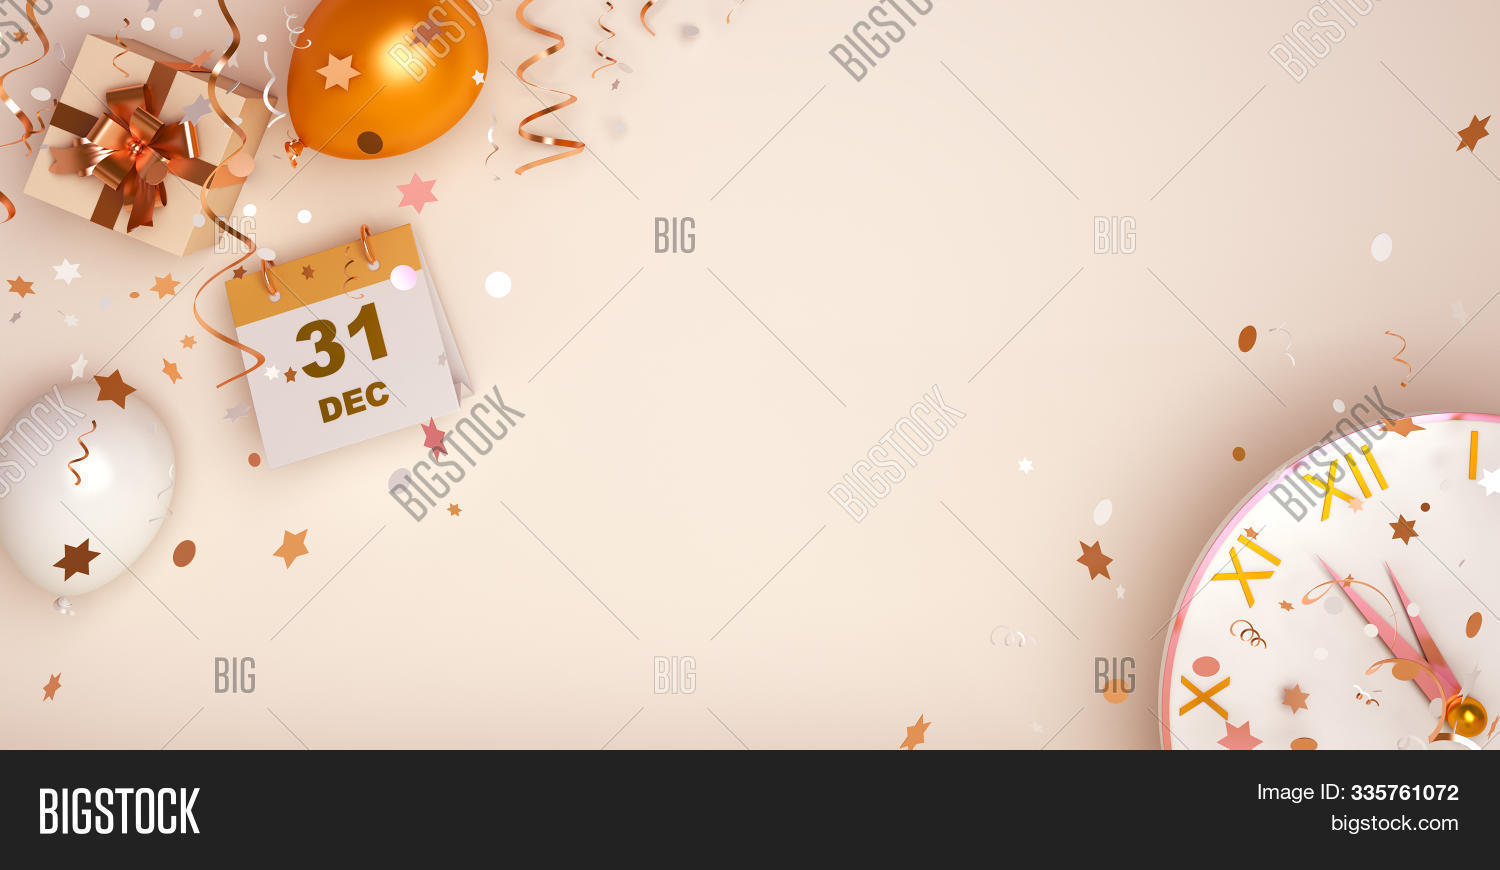 1500x870 - Happy New Year Backgrounds 19